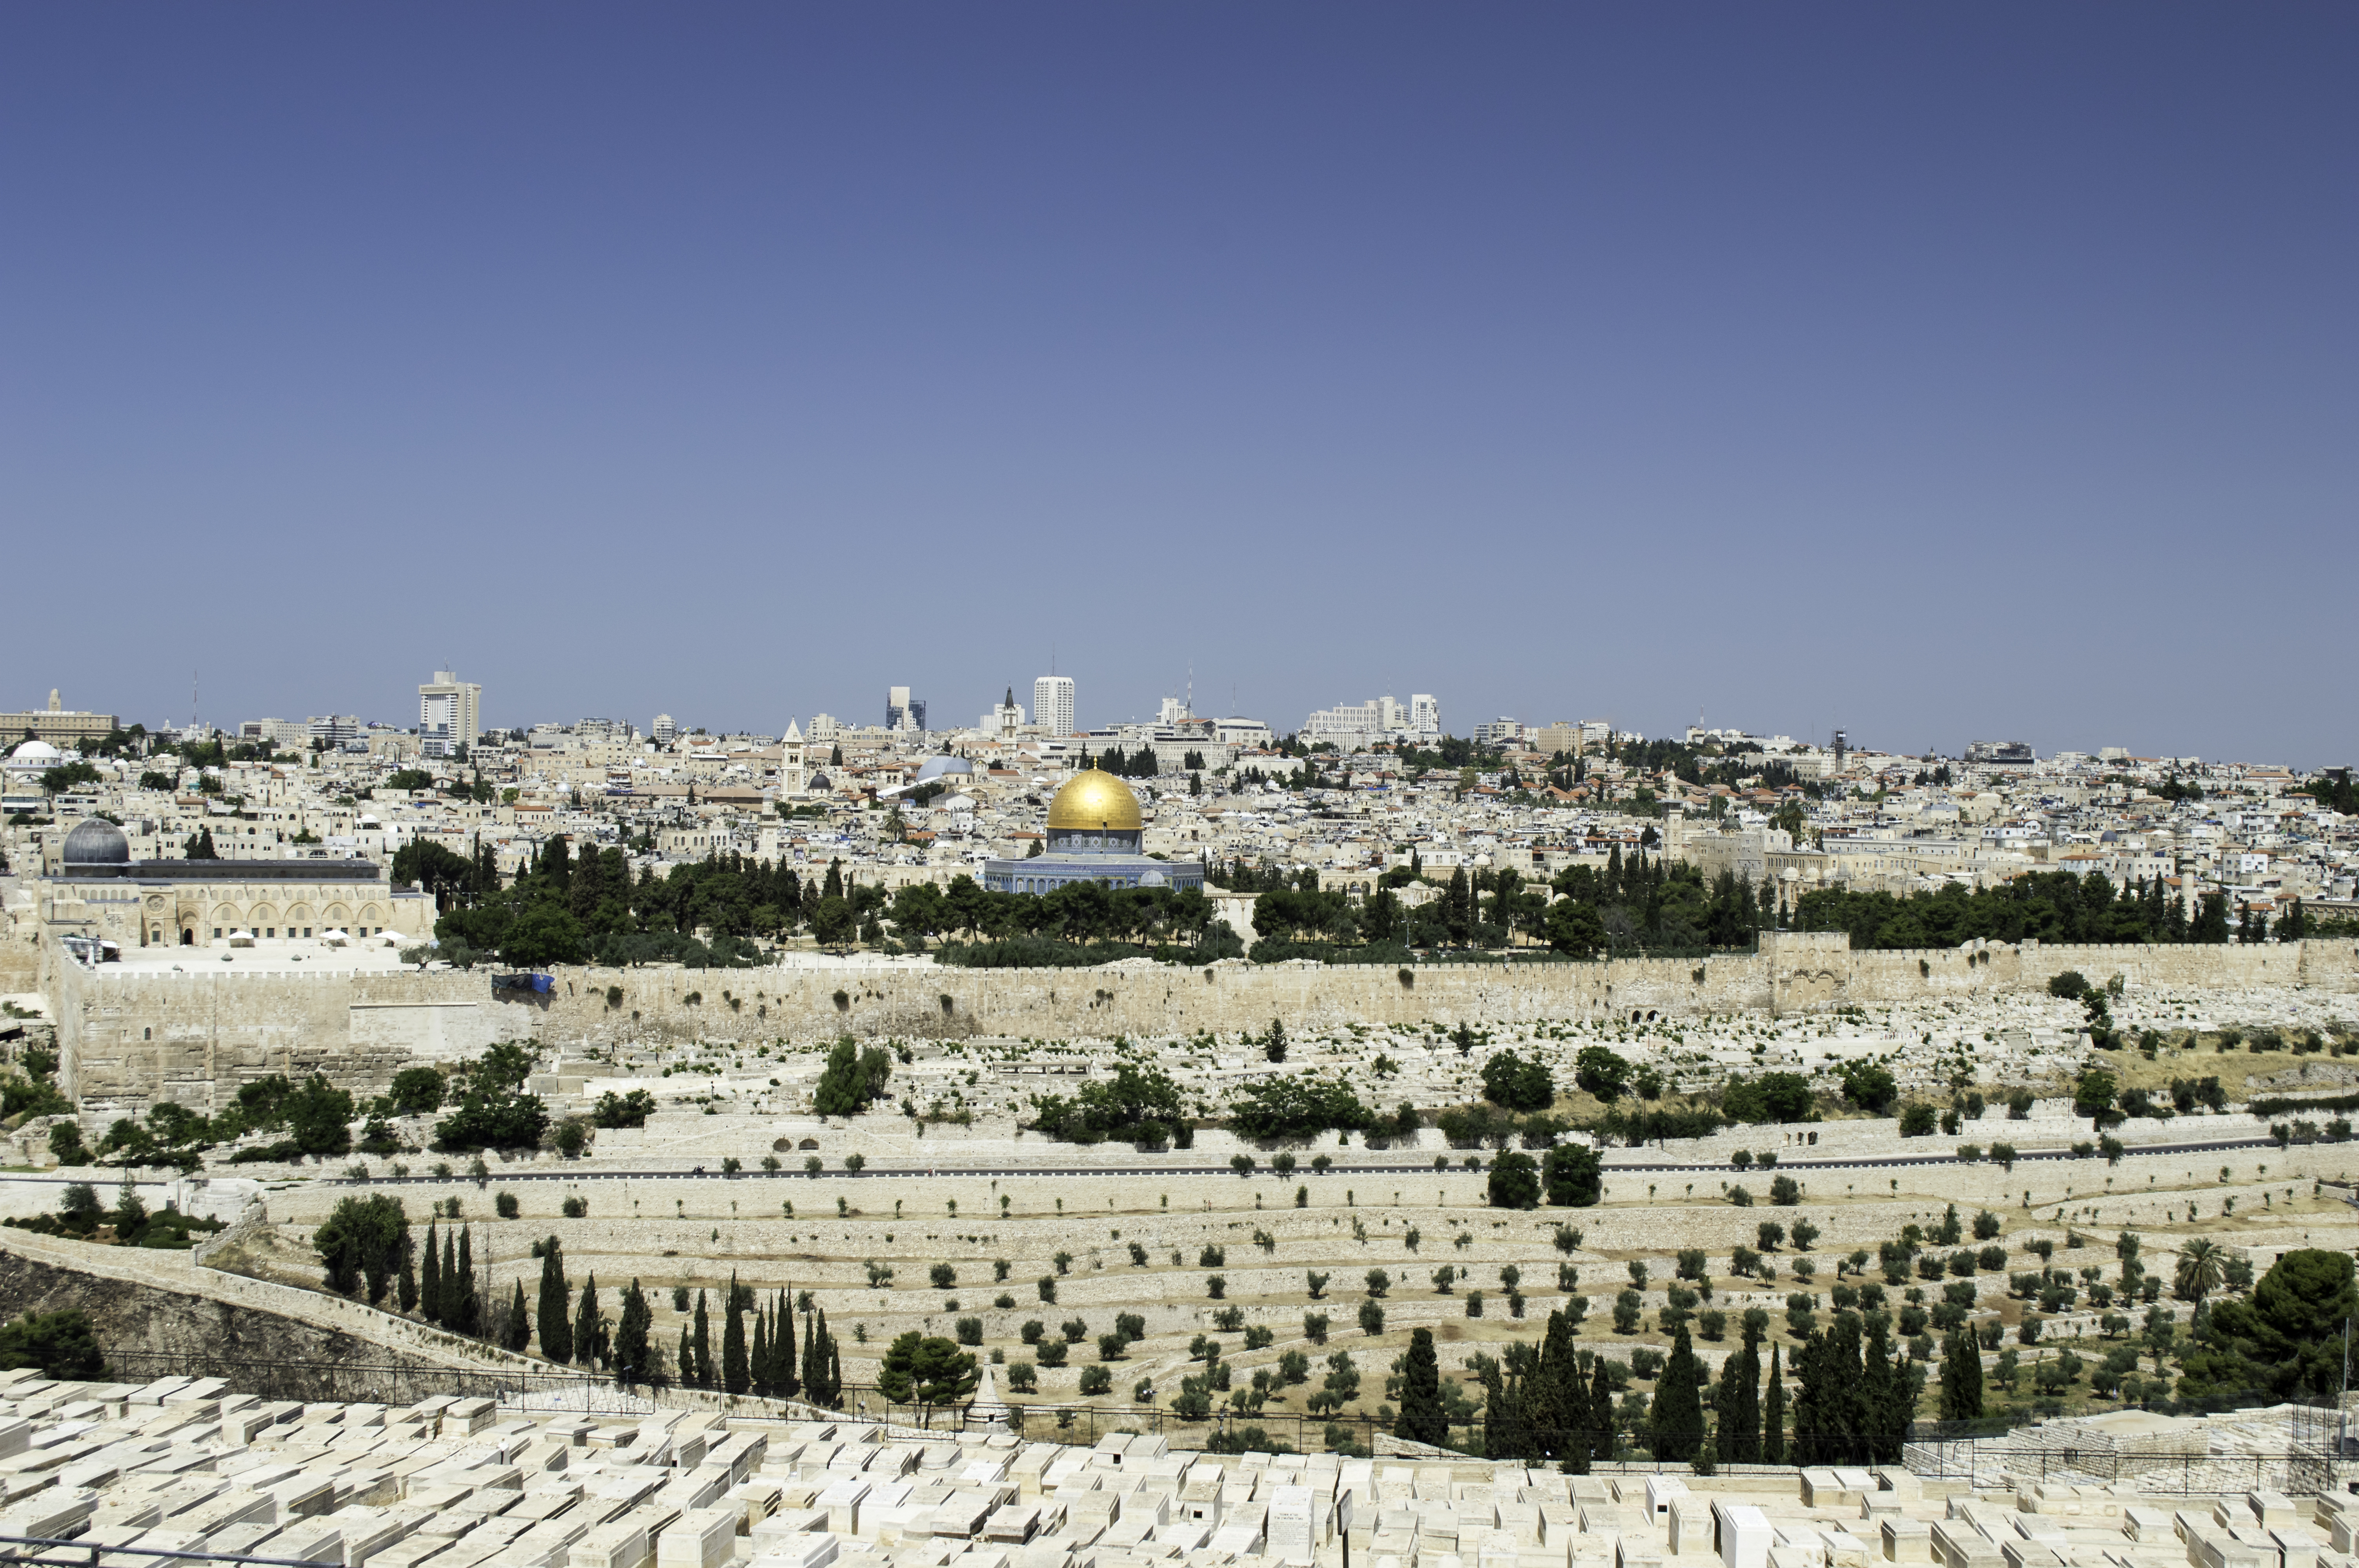 panorama of Jerusalem with of the Temple Mount and Dome of the Rock and Al Aqsa Mosque from the Mount of Olives